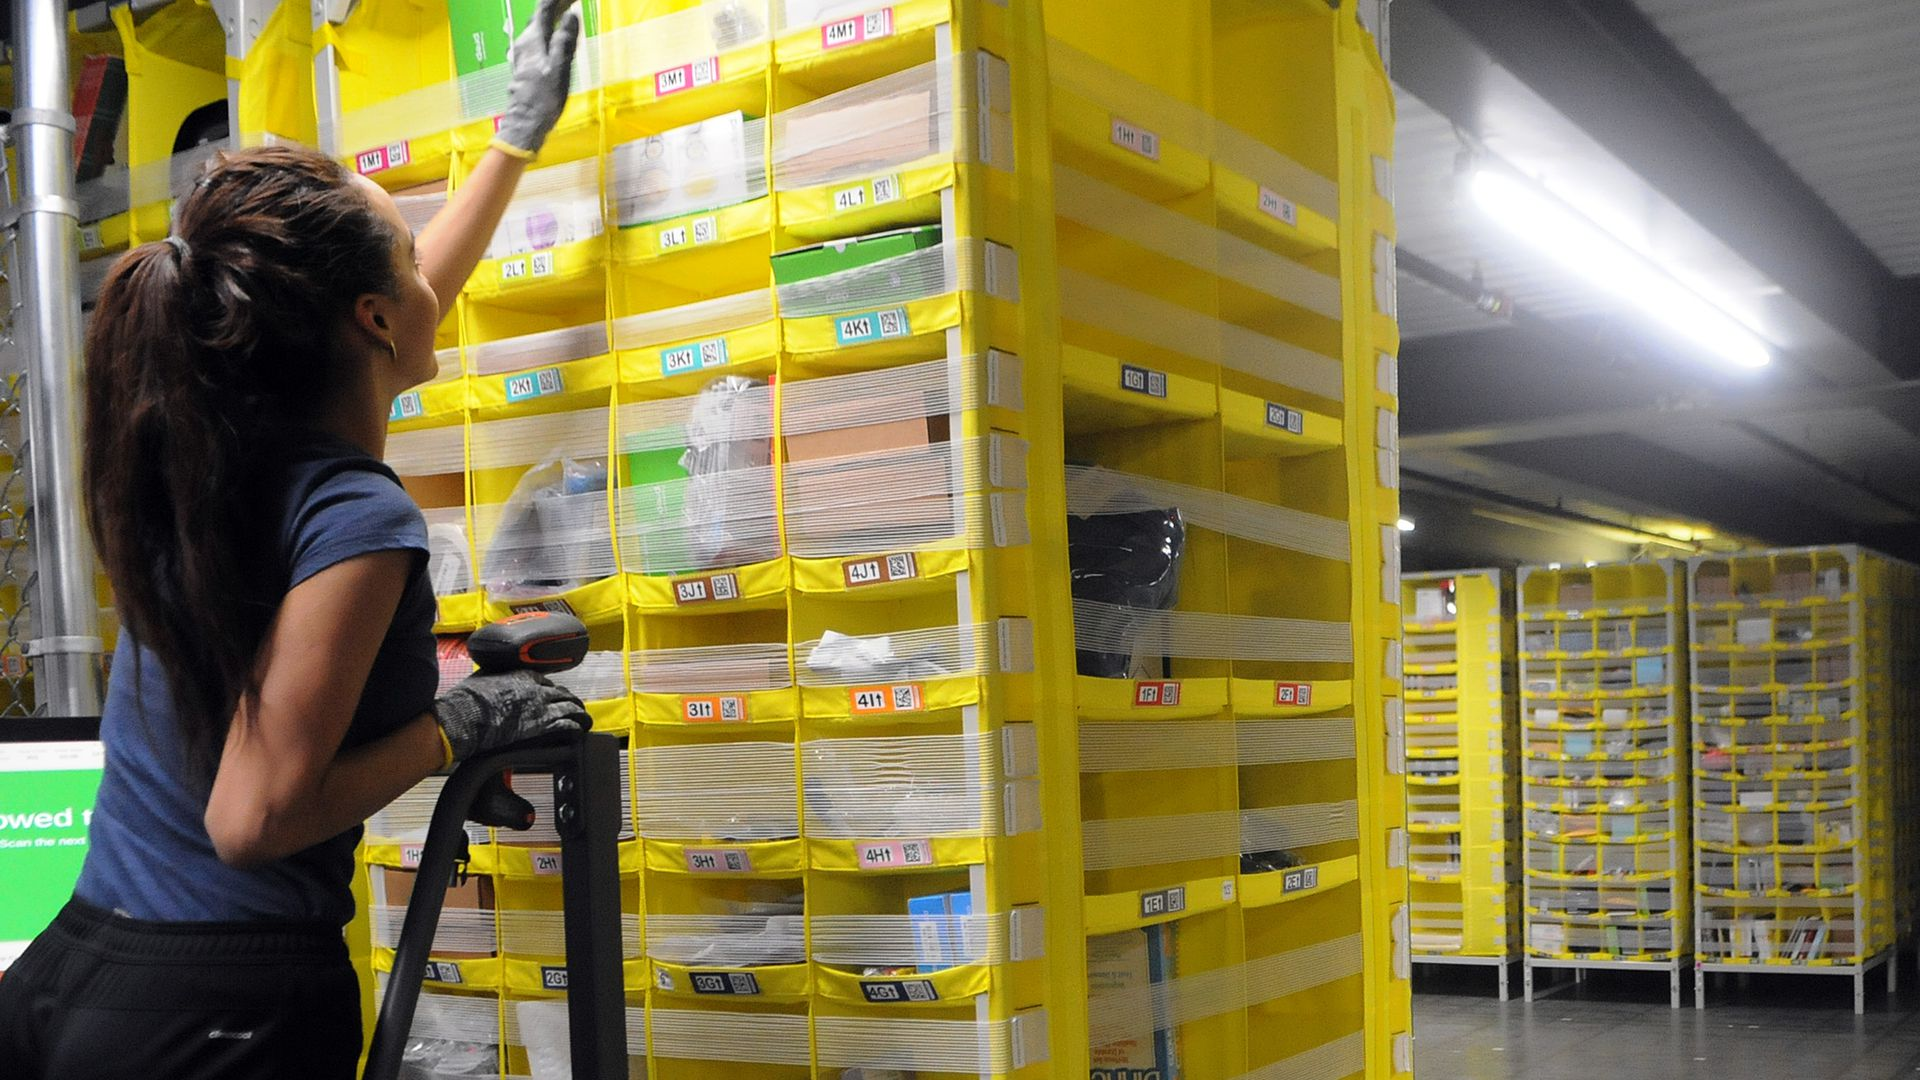 A woman reaches for an item on a yellow shelf in a warehouse